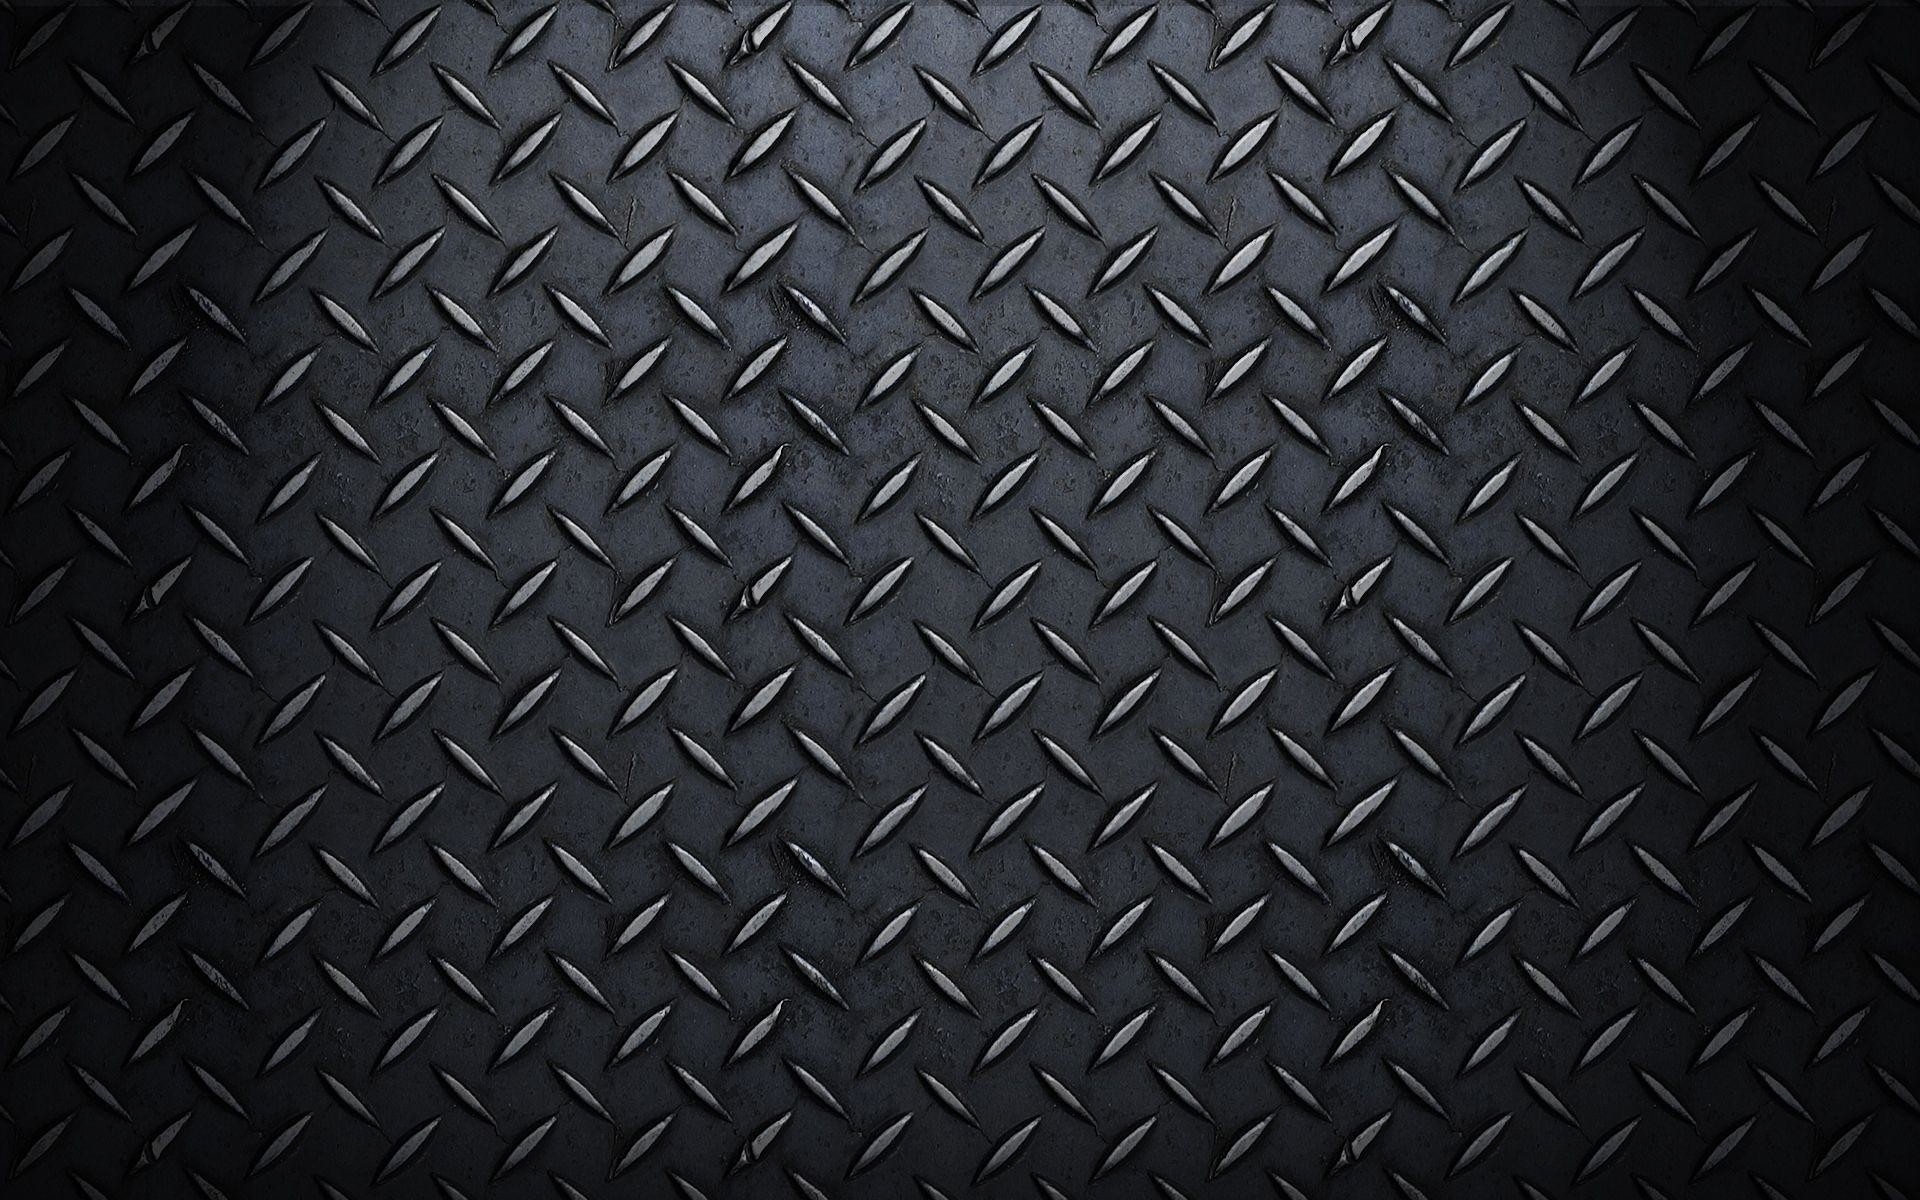 Black Steel Background 32 images 1920x1200